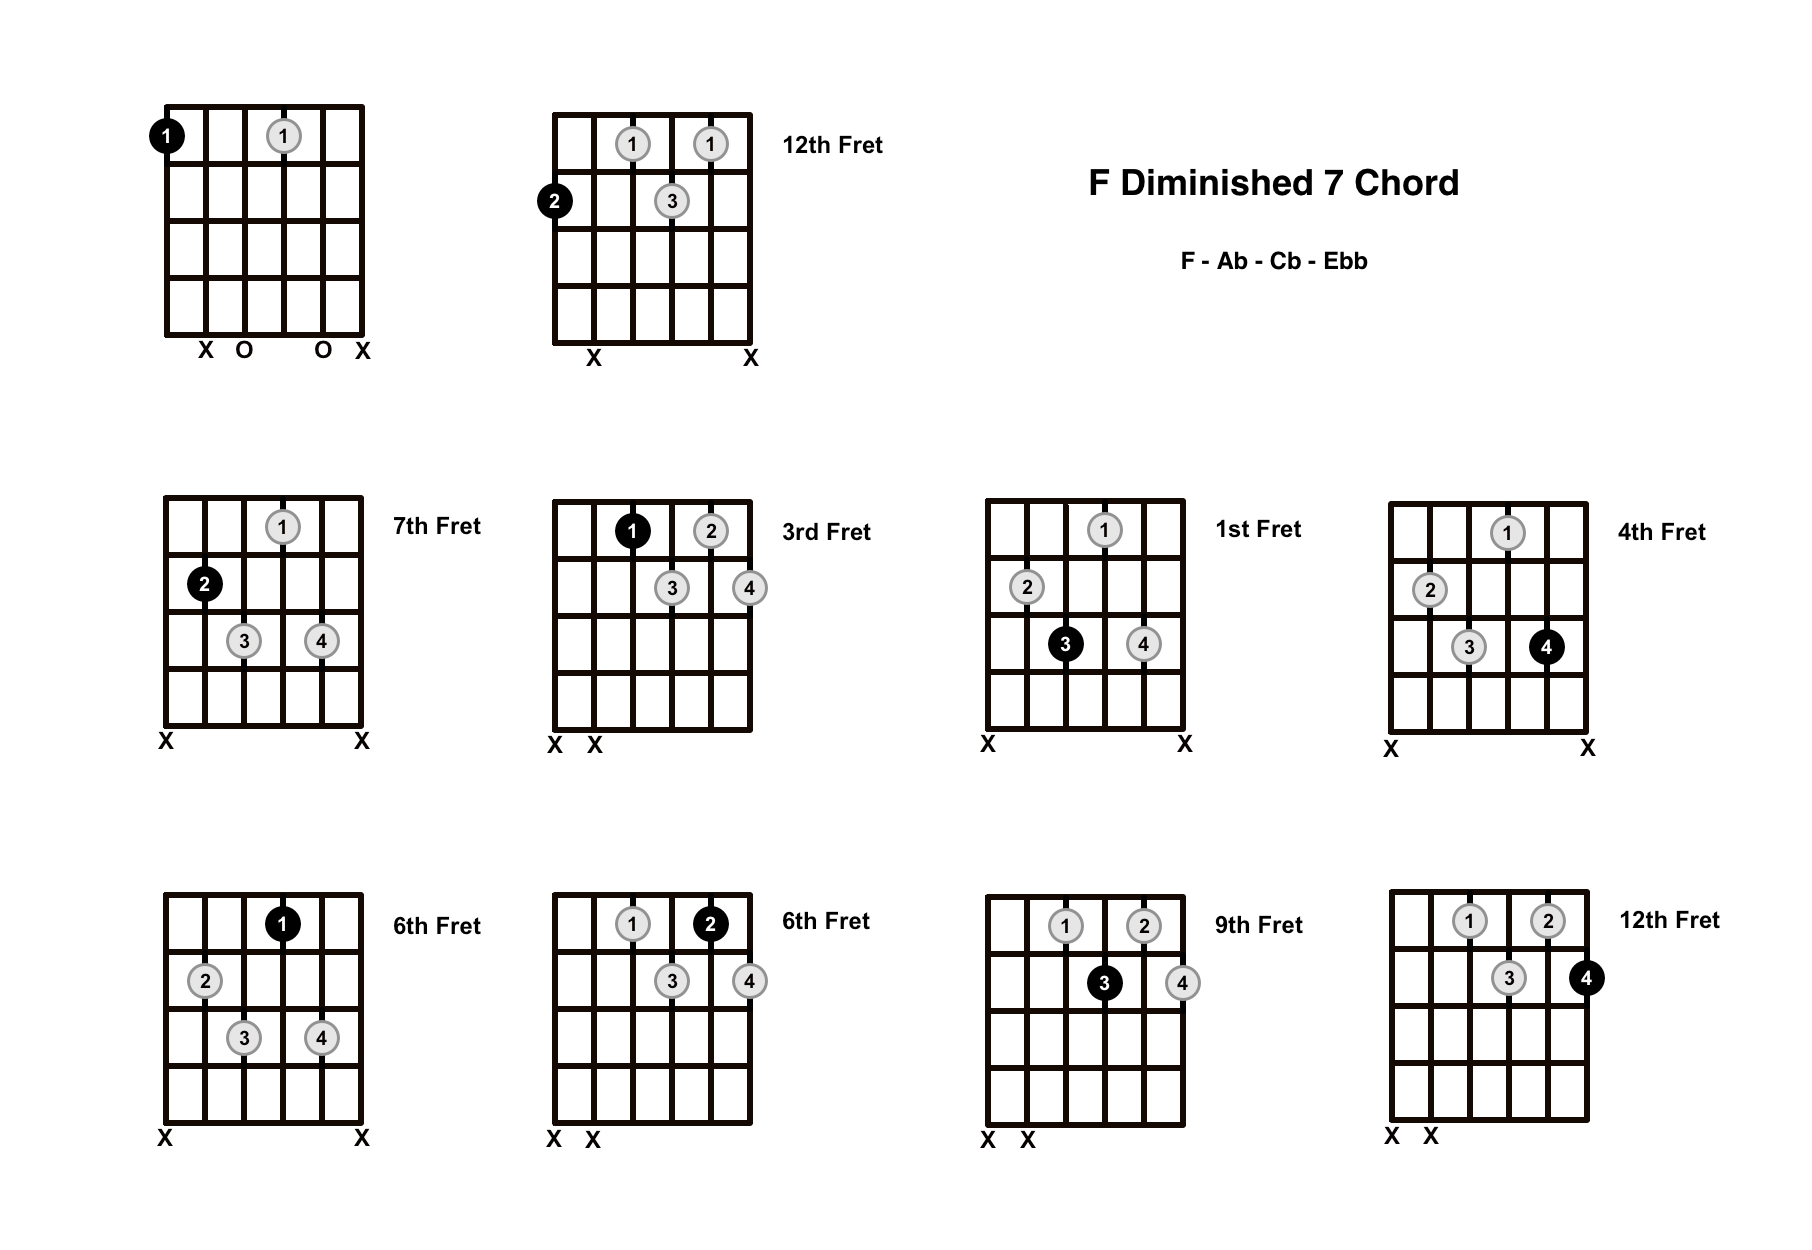 F Diminished 7 Chord On The Guitar (F Dim 7) – Diagrams, Finger Positions and Theory